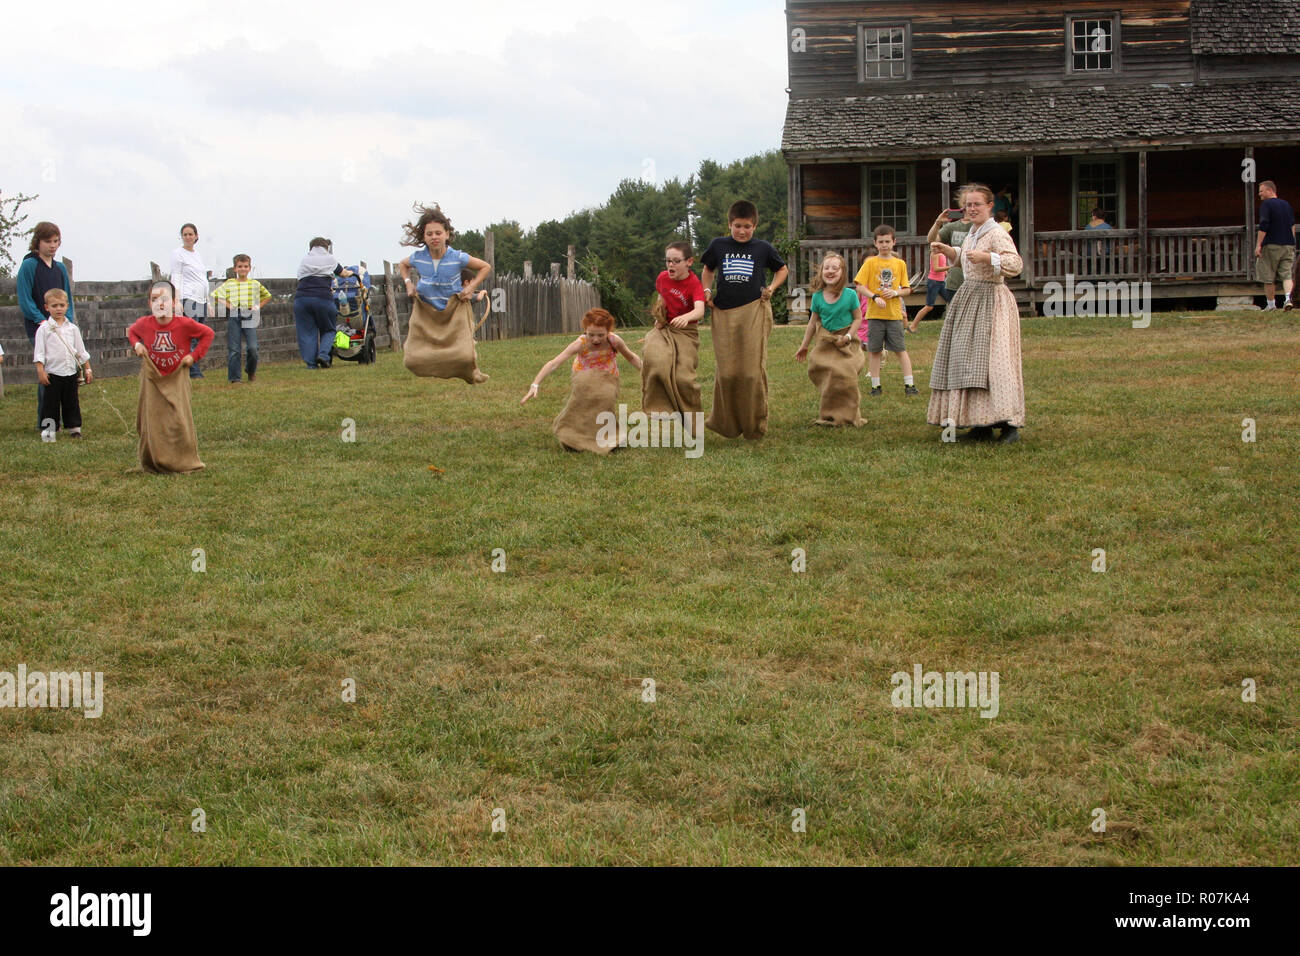 Children competing in a potato sack race at the Frontier Culture Museum in Staunton, VA - Stock Image